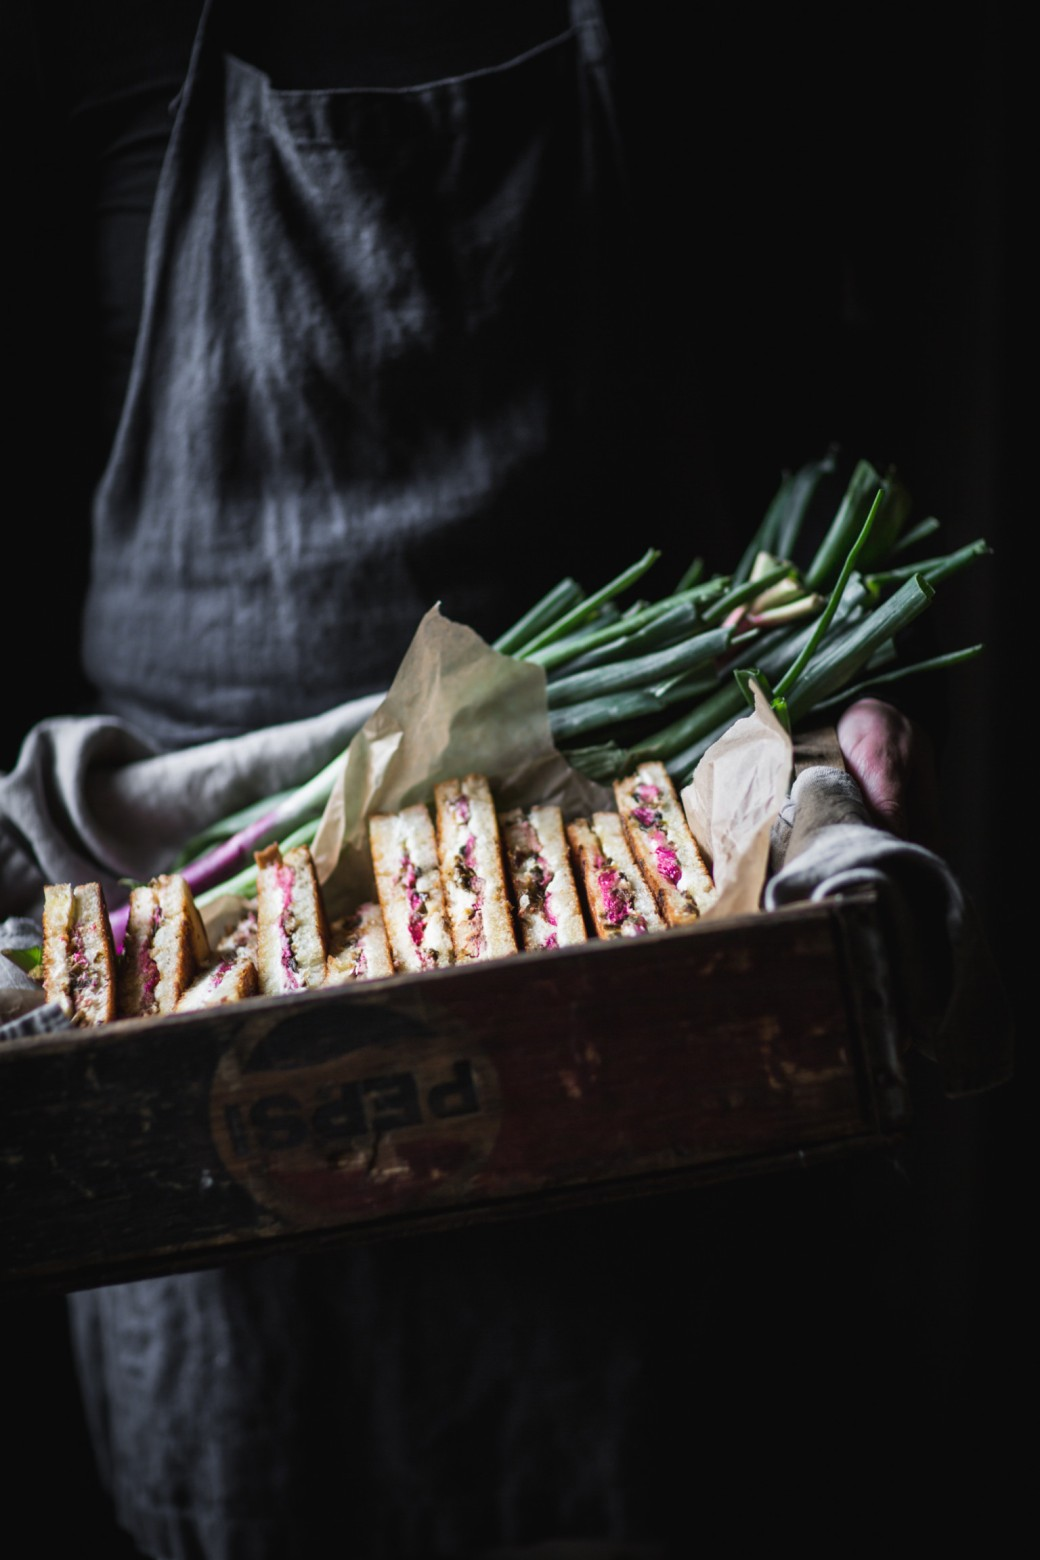 Rhubarb-Chevre-and-Caramelized-Spring-Onion-Grilled-Cheese-14-768x1152@2x